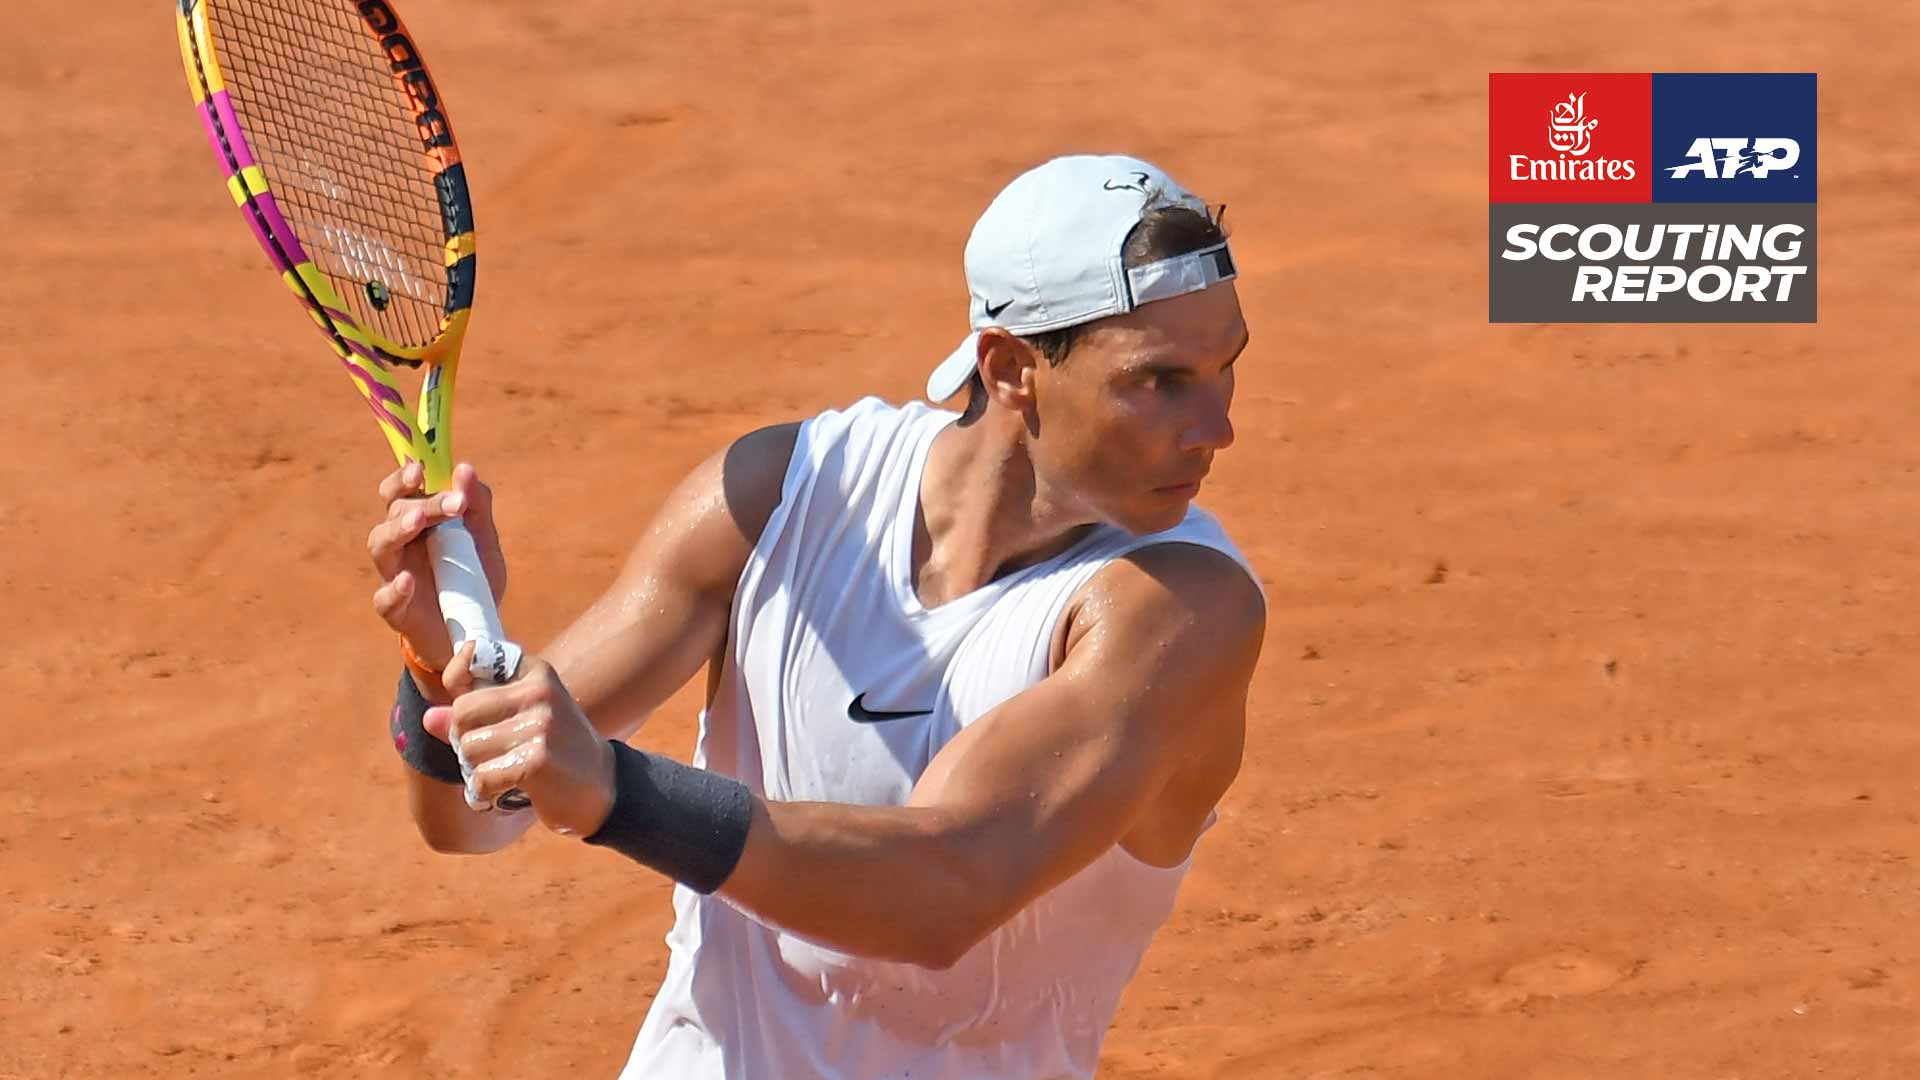 Scouting Report 10 Things To Watch In Rome Atp Tour Tennis